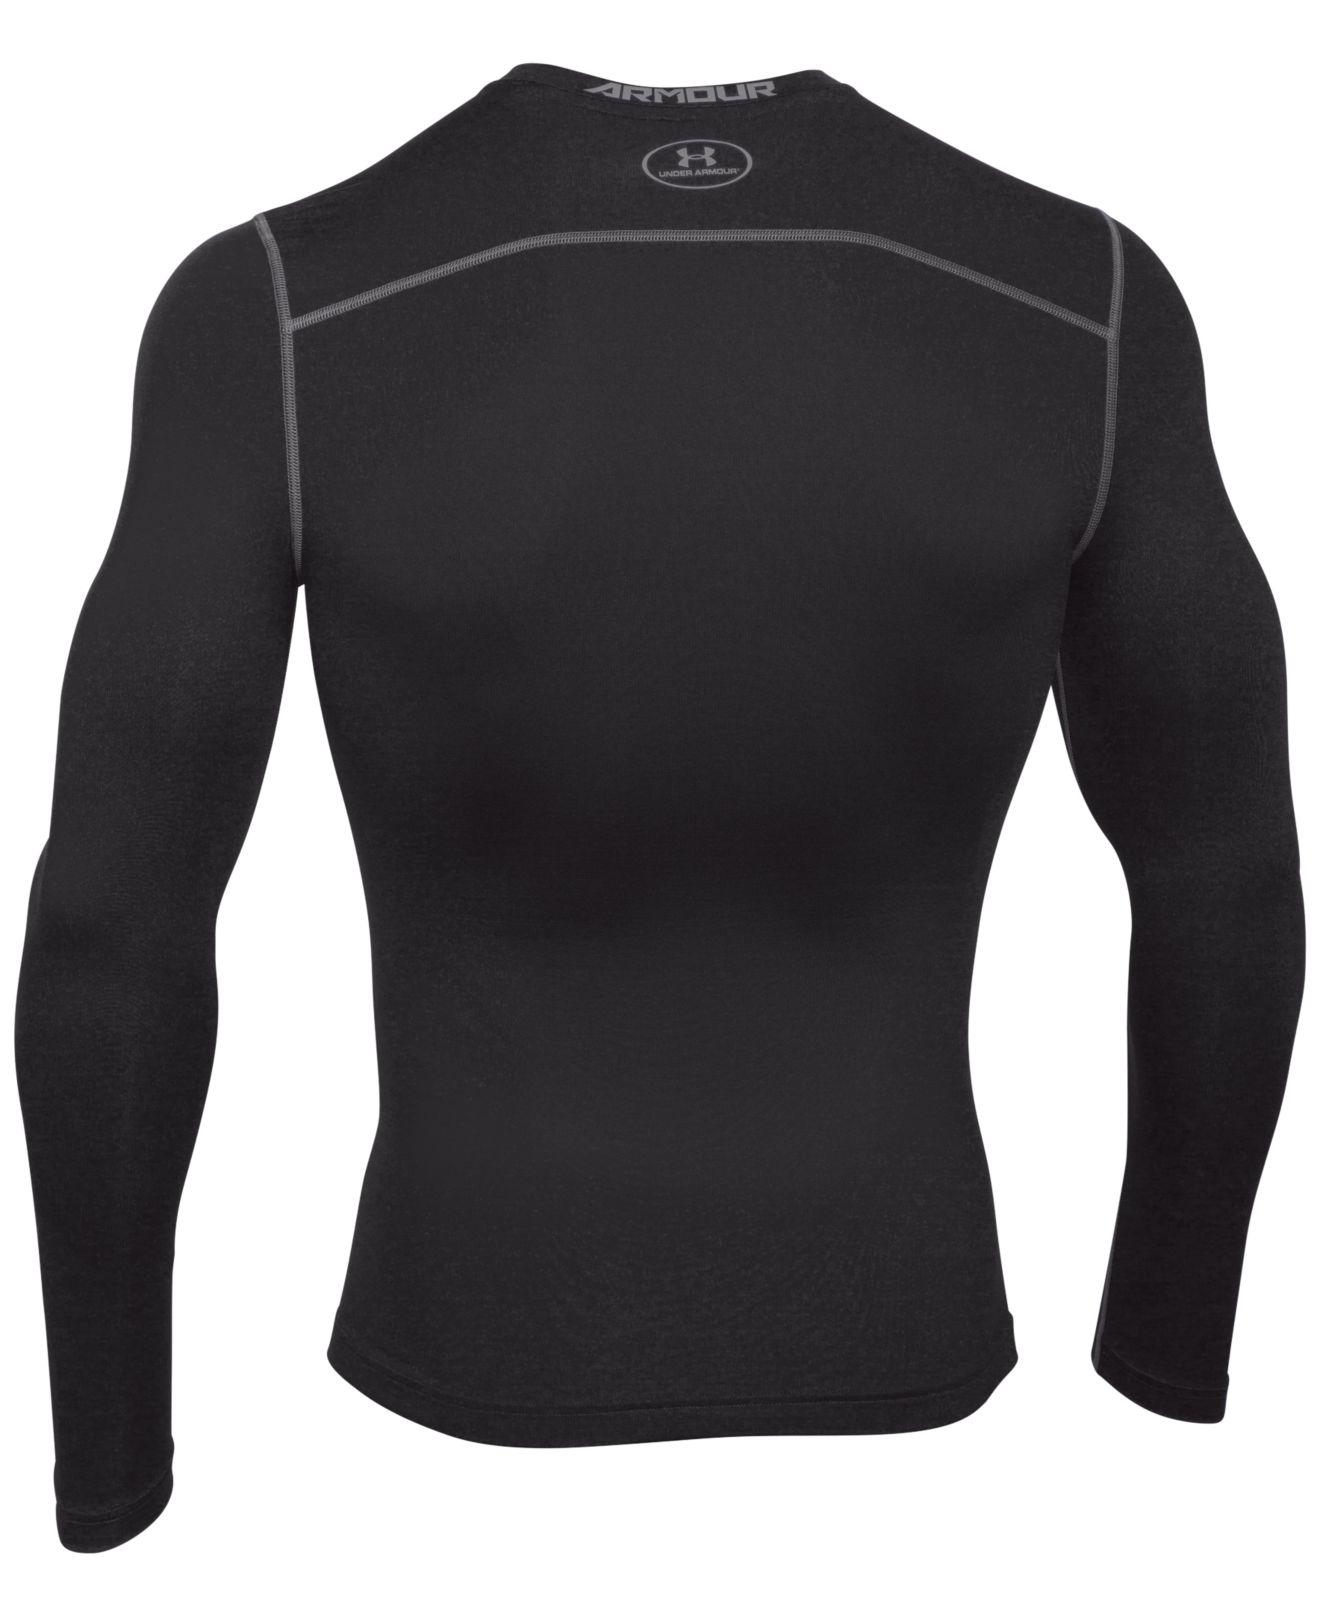 Under armour long sleeve t shirt in black for men lyst for Under armour cold gear shirt mens